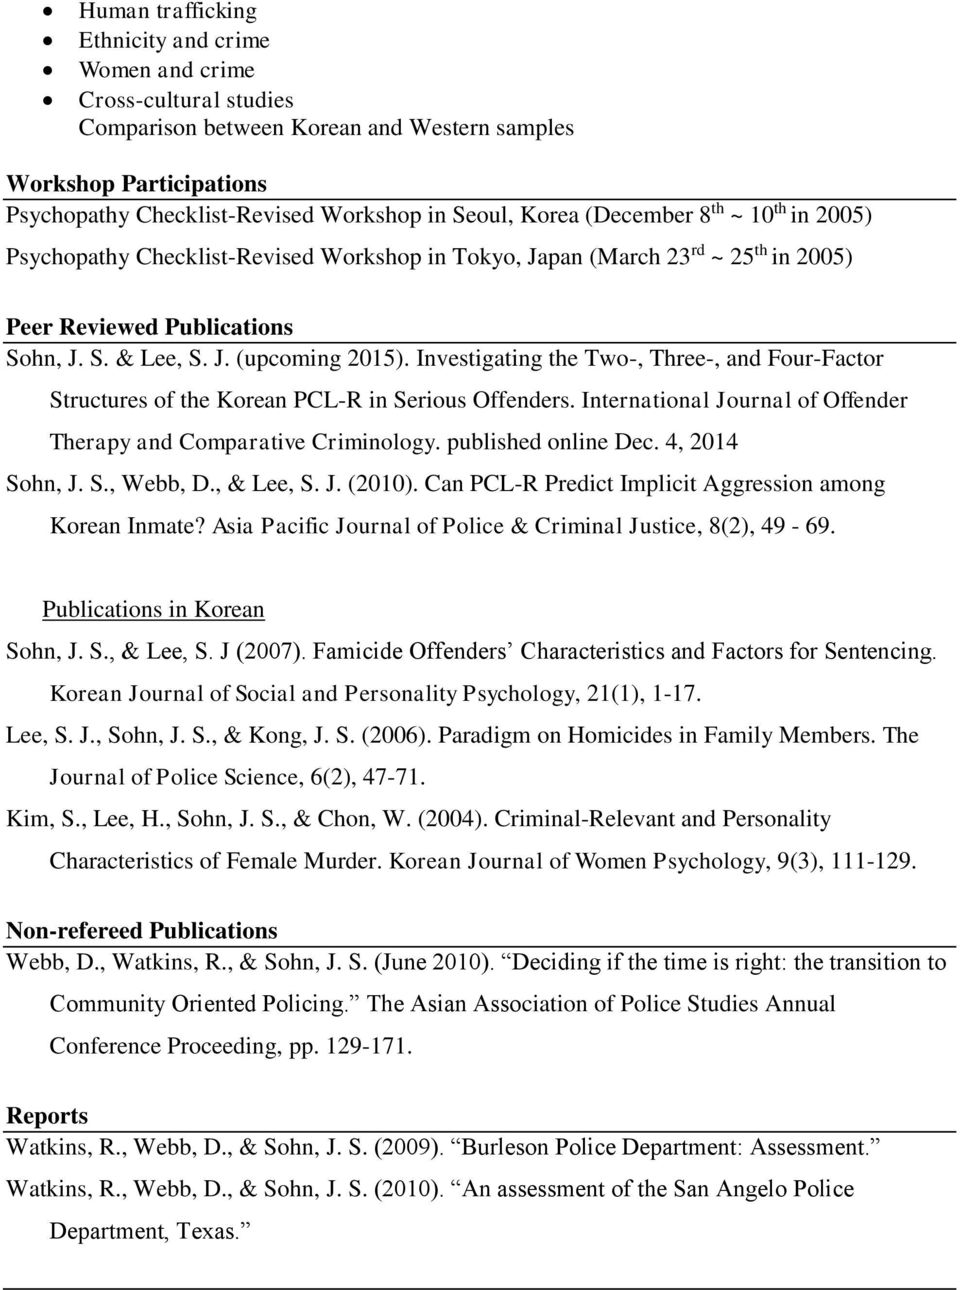 Investigating the Two-, Three-, and Four-Factor Structures of the Korean PCL-R in Serious Offenders. International Journal of Offender Therapy and Comparative Criminology. published online Dec.